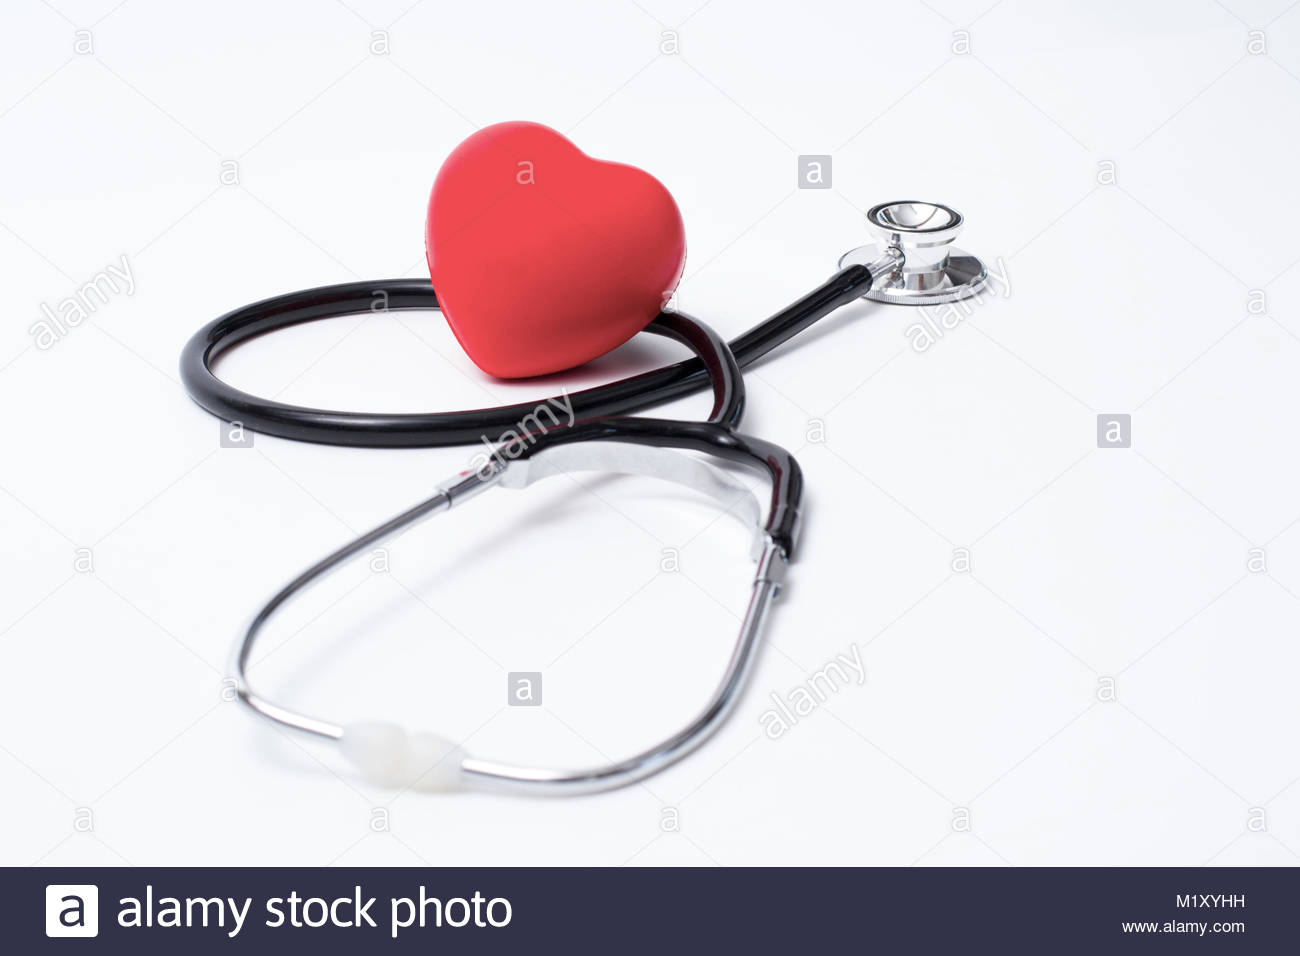 Medical stethoscope head and red toy heart lying on cardiogram chart closeup. Cardio therapeutist, pulse graph, - Stock Image